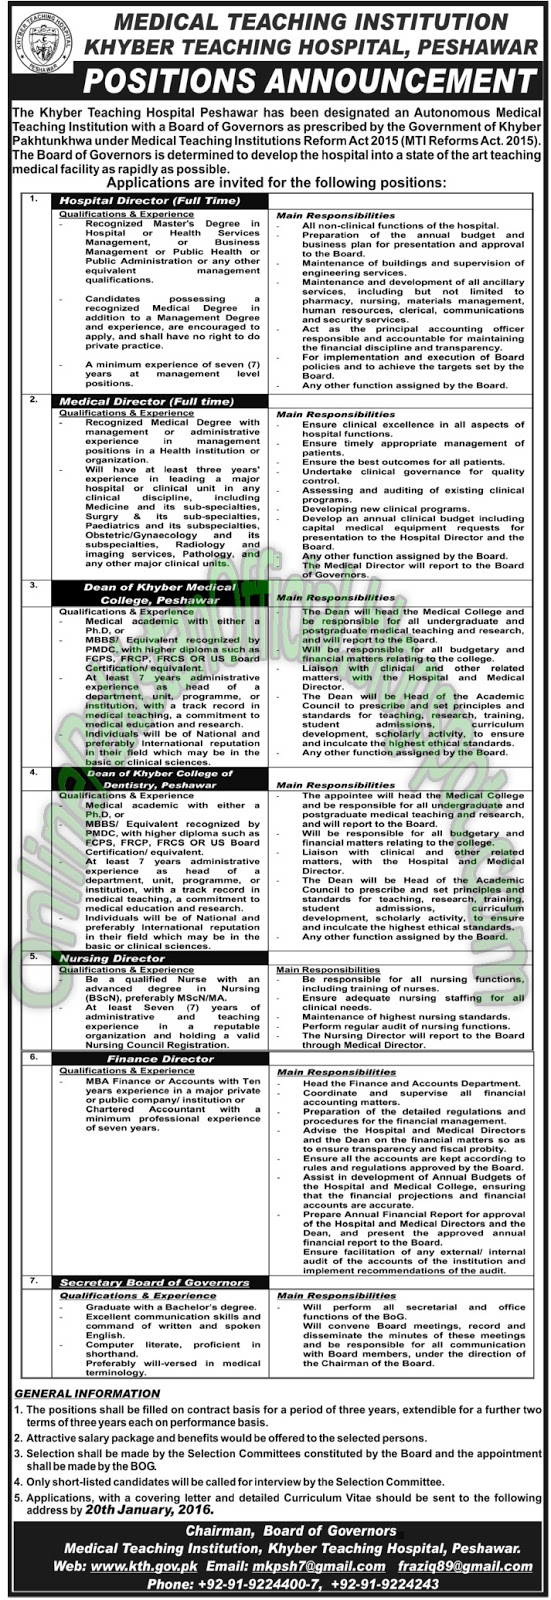 Medical Teaching Institution, Khyber Teaching Hospital - Peshawar